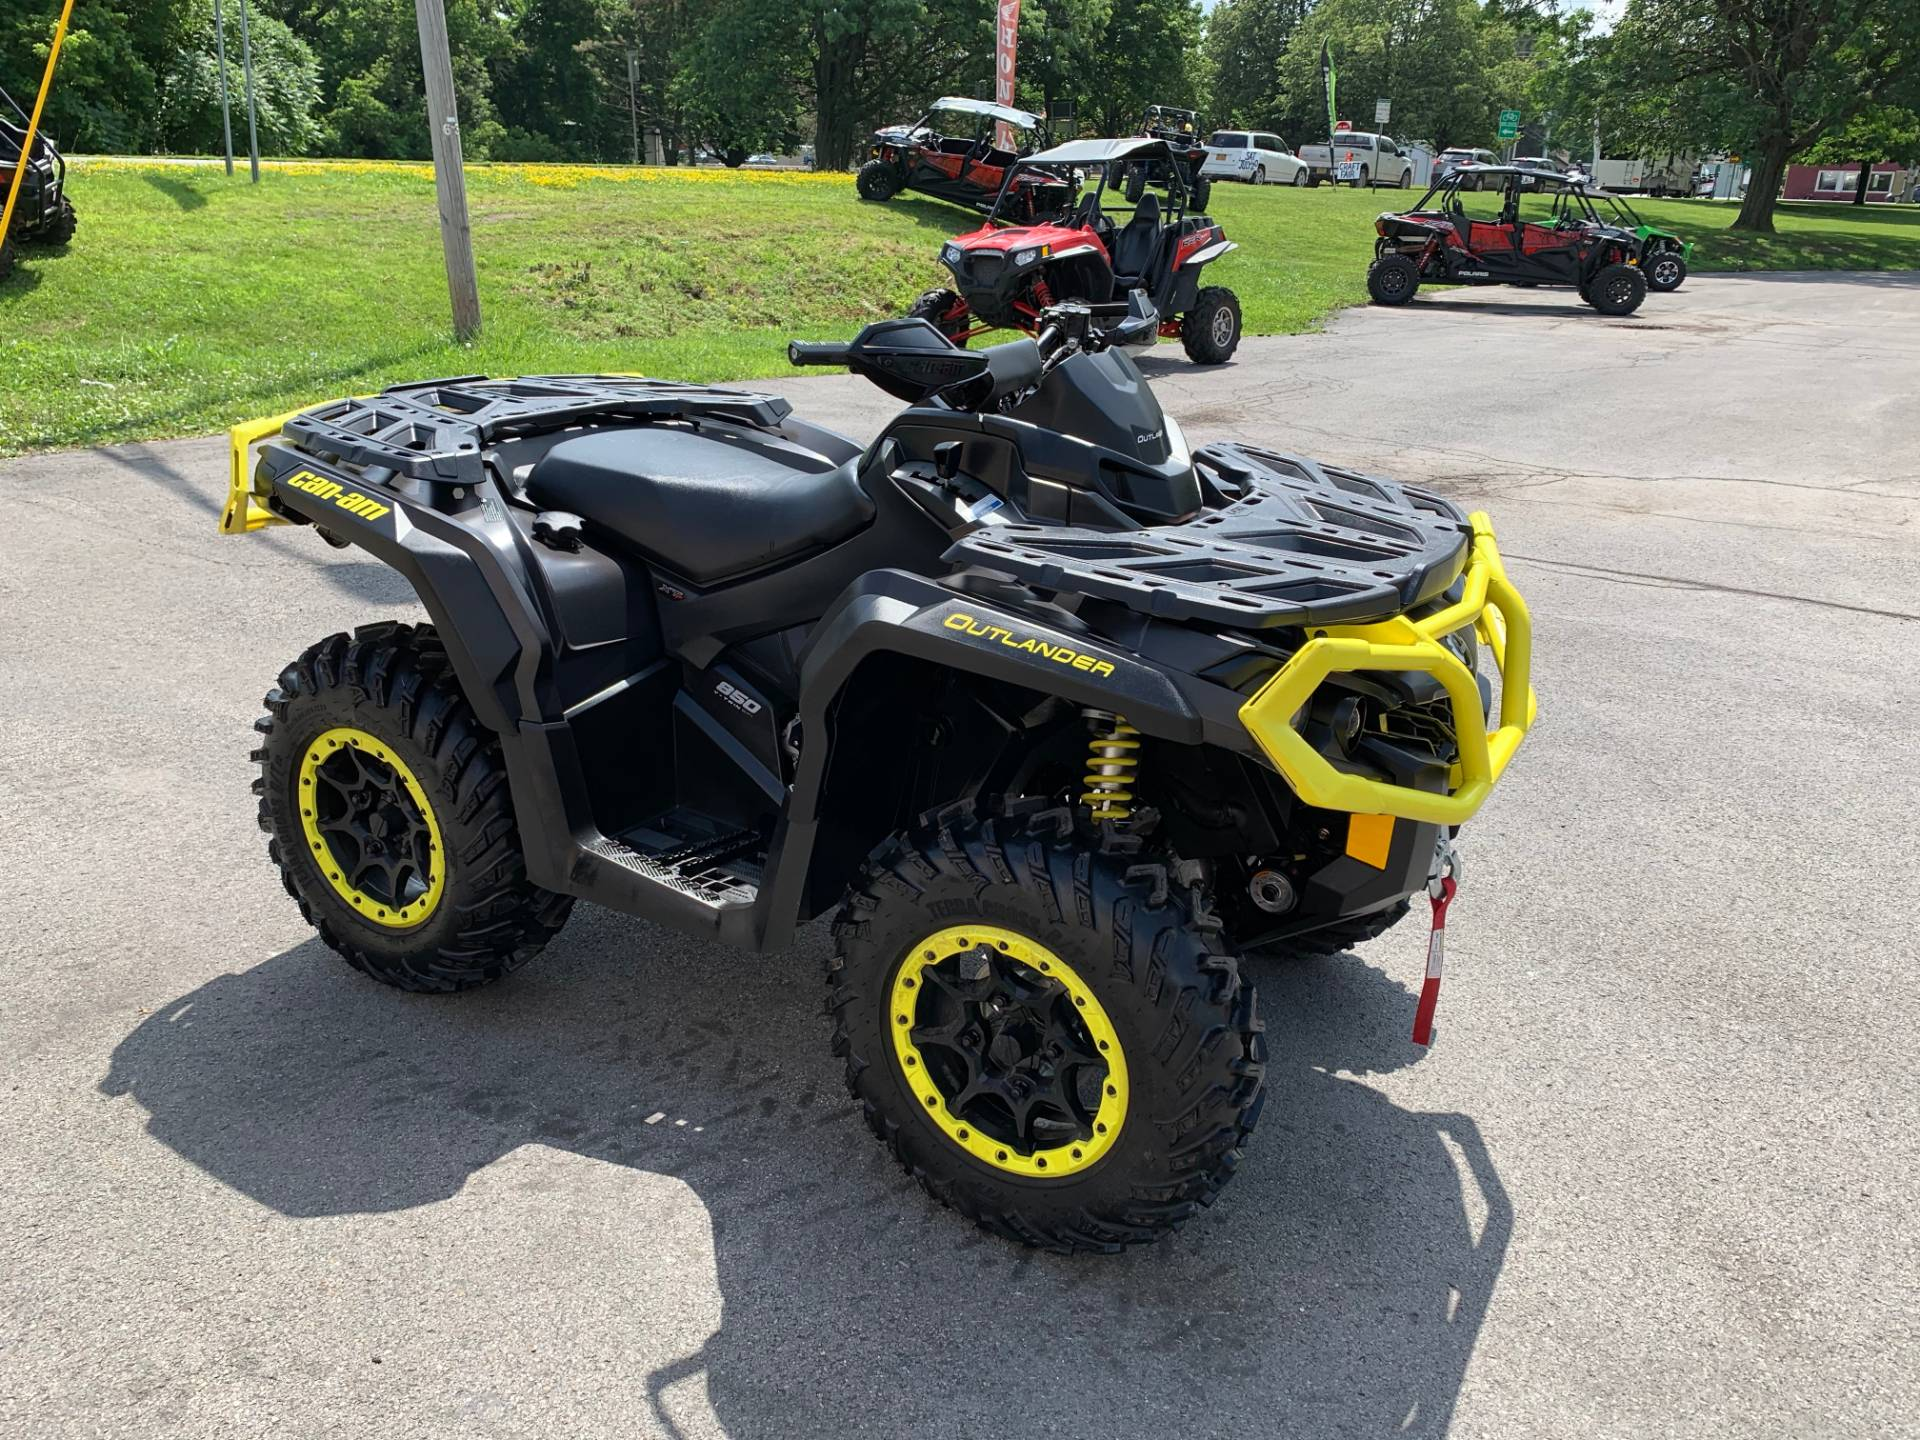 2019 Can-Am Outlander XT-P 850 in Herkimer, New York - Photo 10